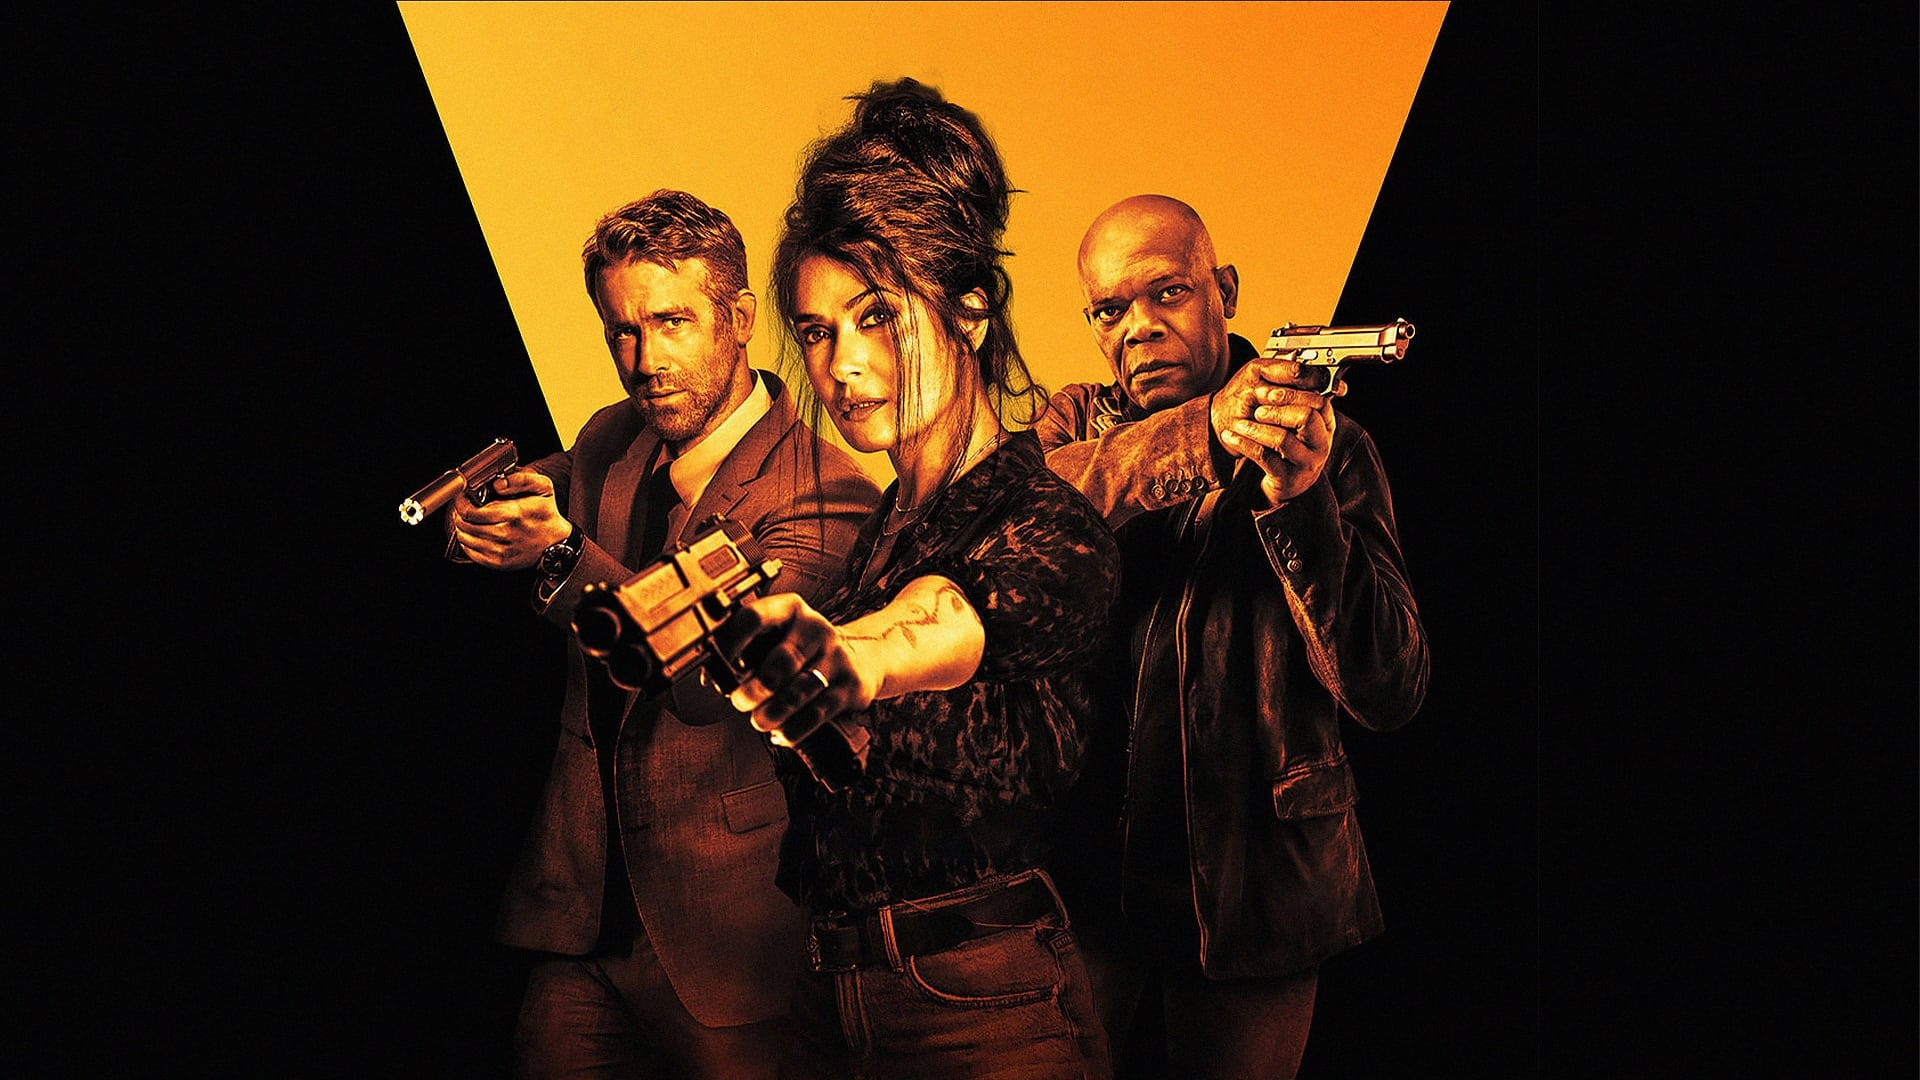 [Film review] The Hitman's Wife's Bodyguard